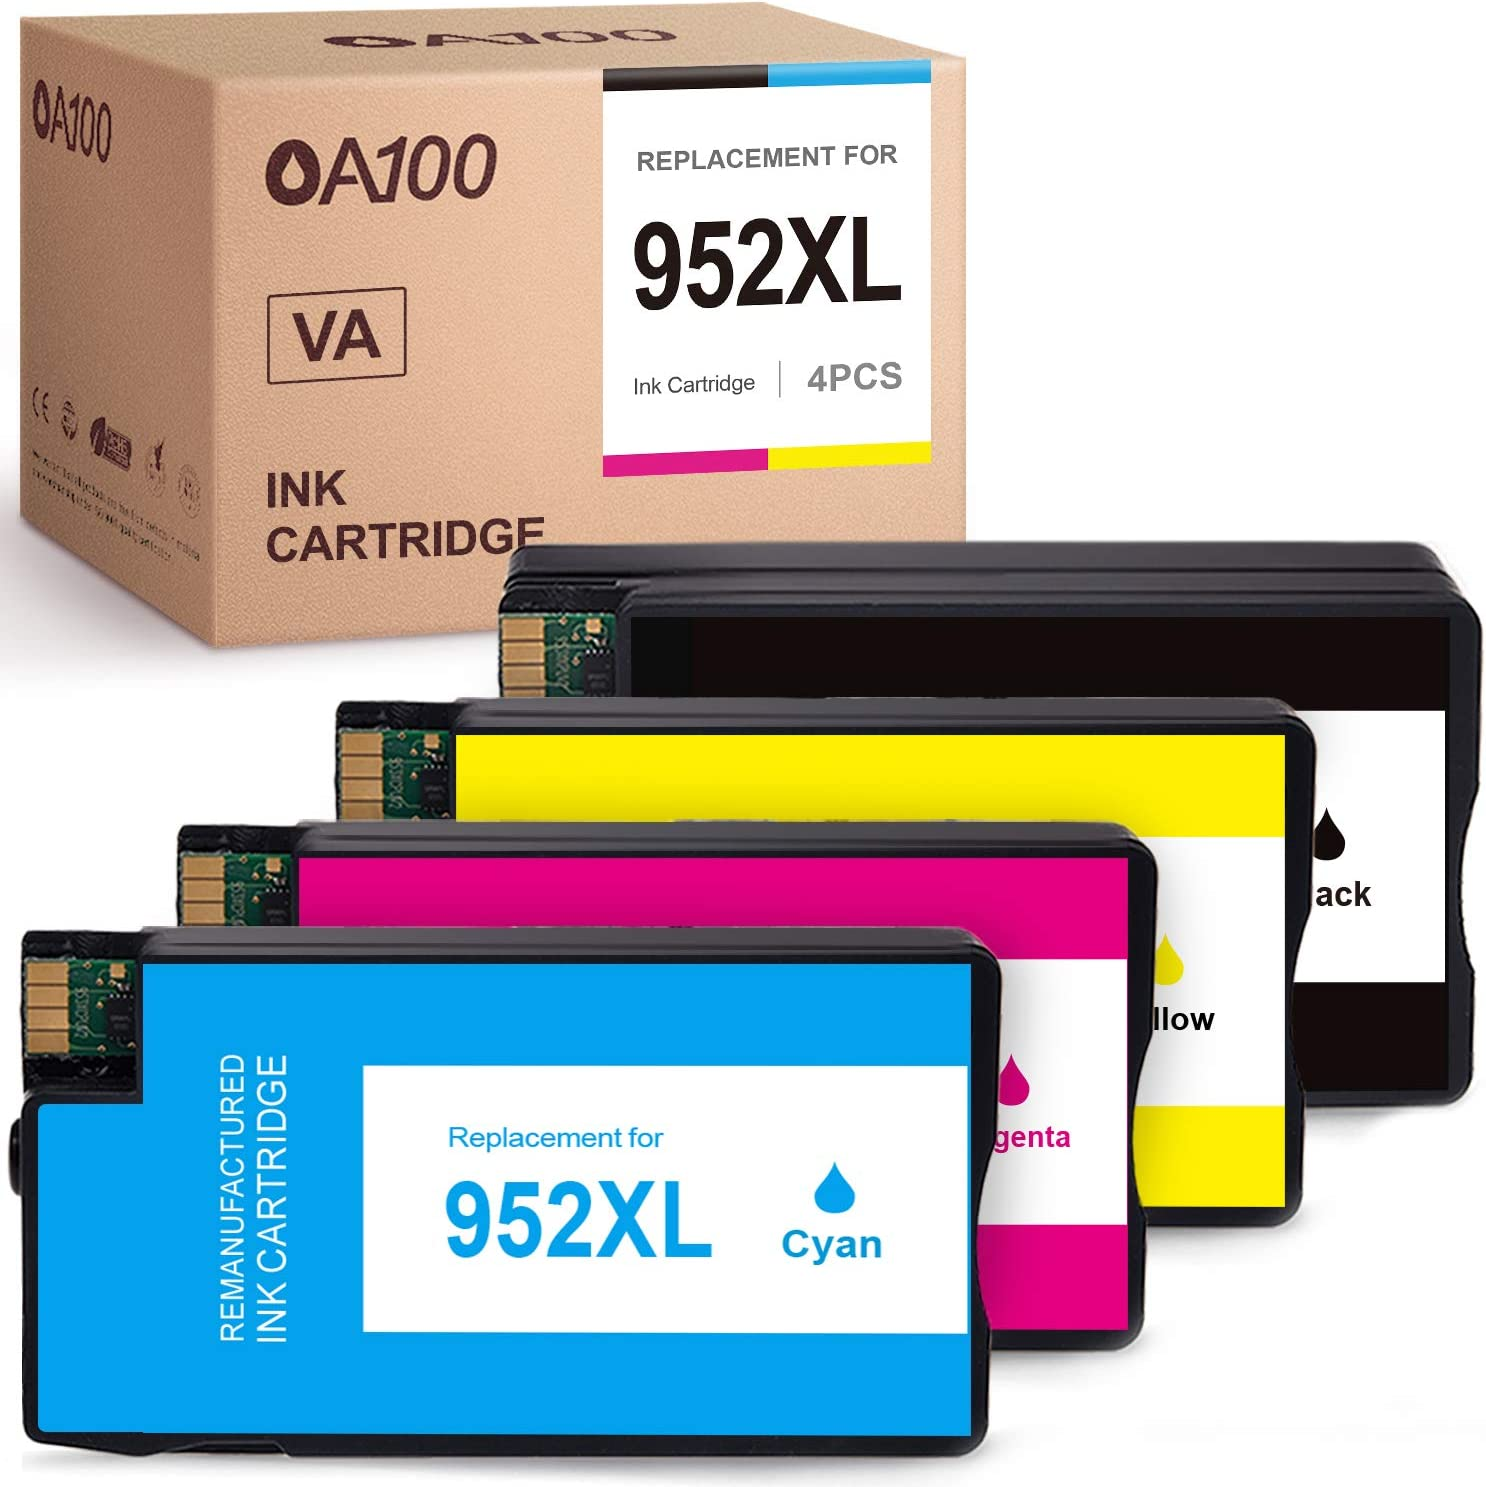 OA100 Remanufactured Ink Cartridge Replacement Upgraded Chip for HP 952XL 952 XL for OfficeJet Pro 8710 8720 8702 8715 8740 7720 8200 8210 8730 8216 7740 8700 (Black, Cyan, Magenta, Yellow, 4-Pack)